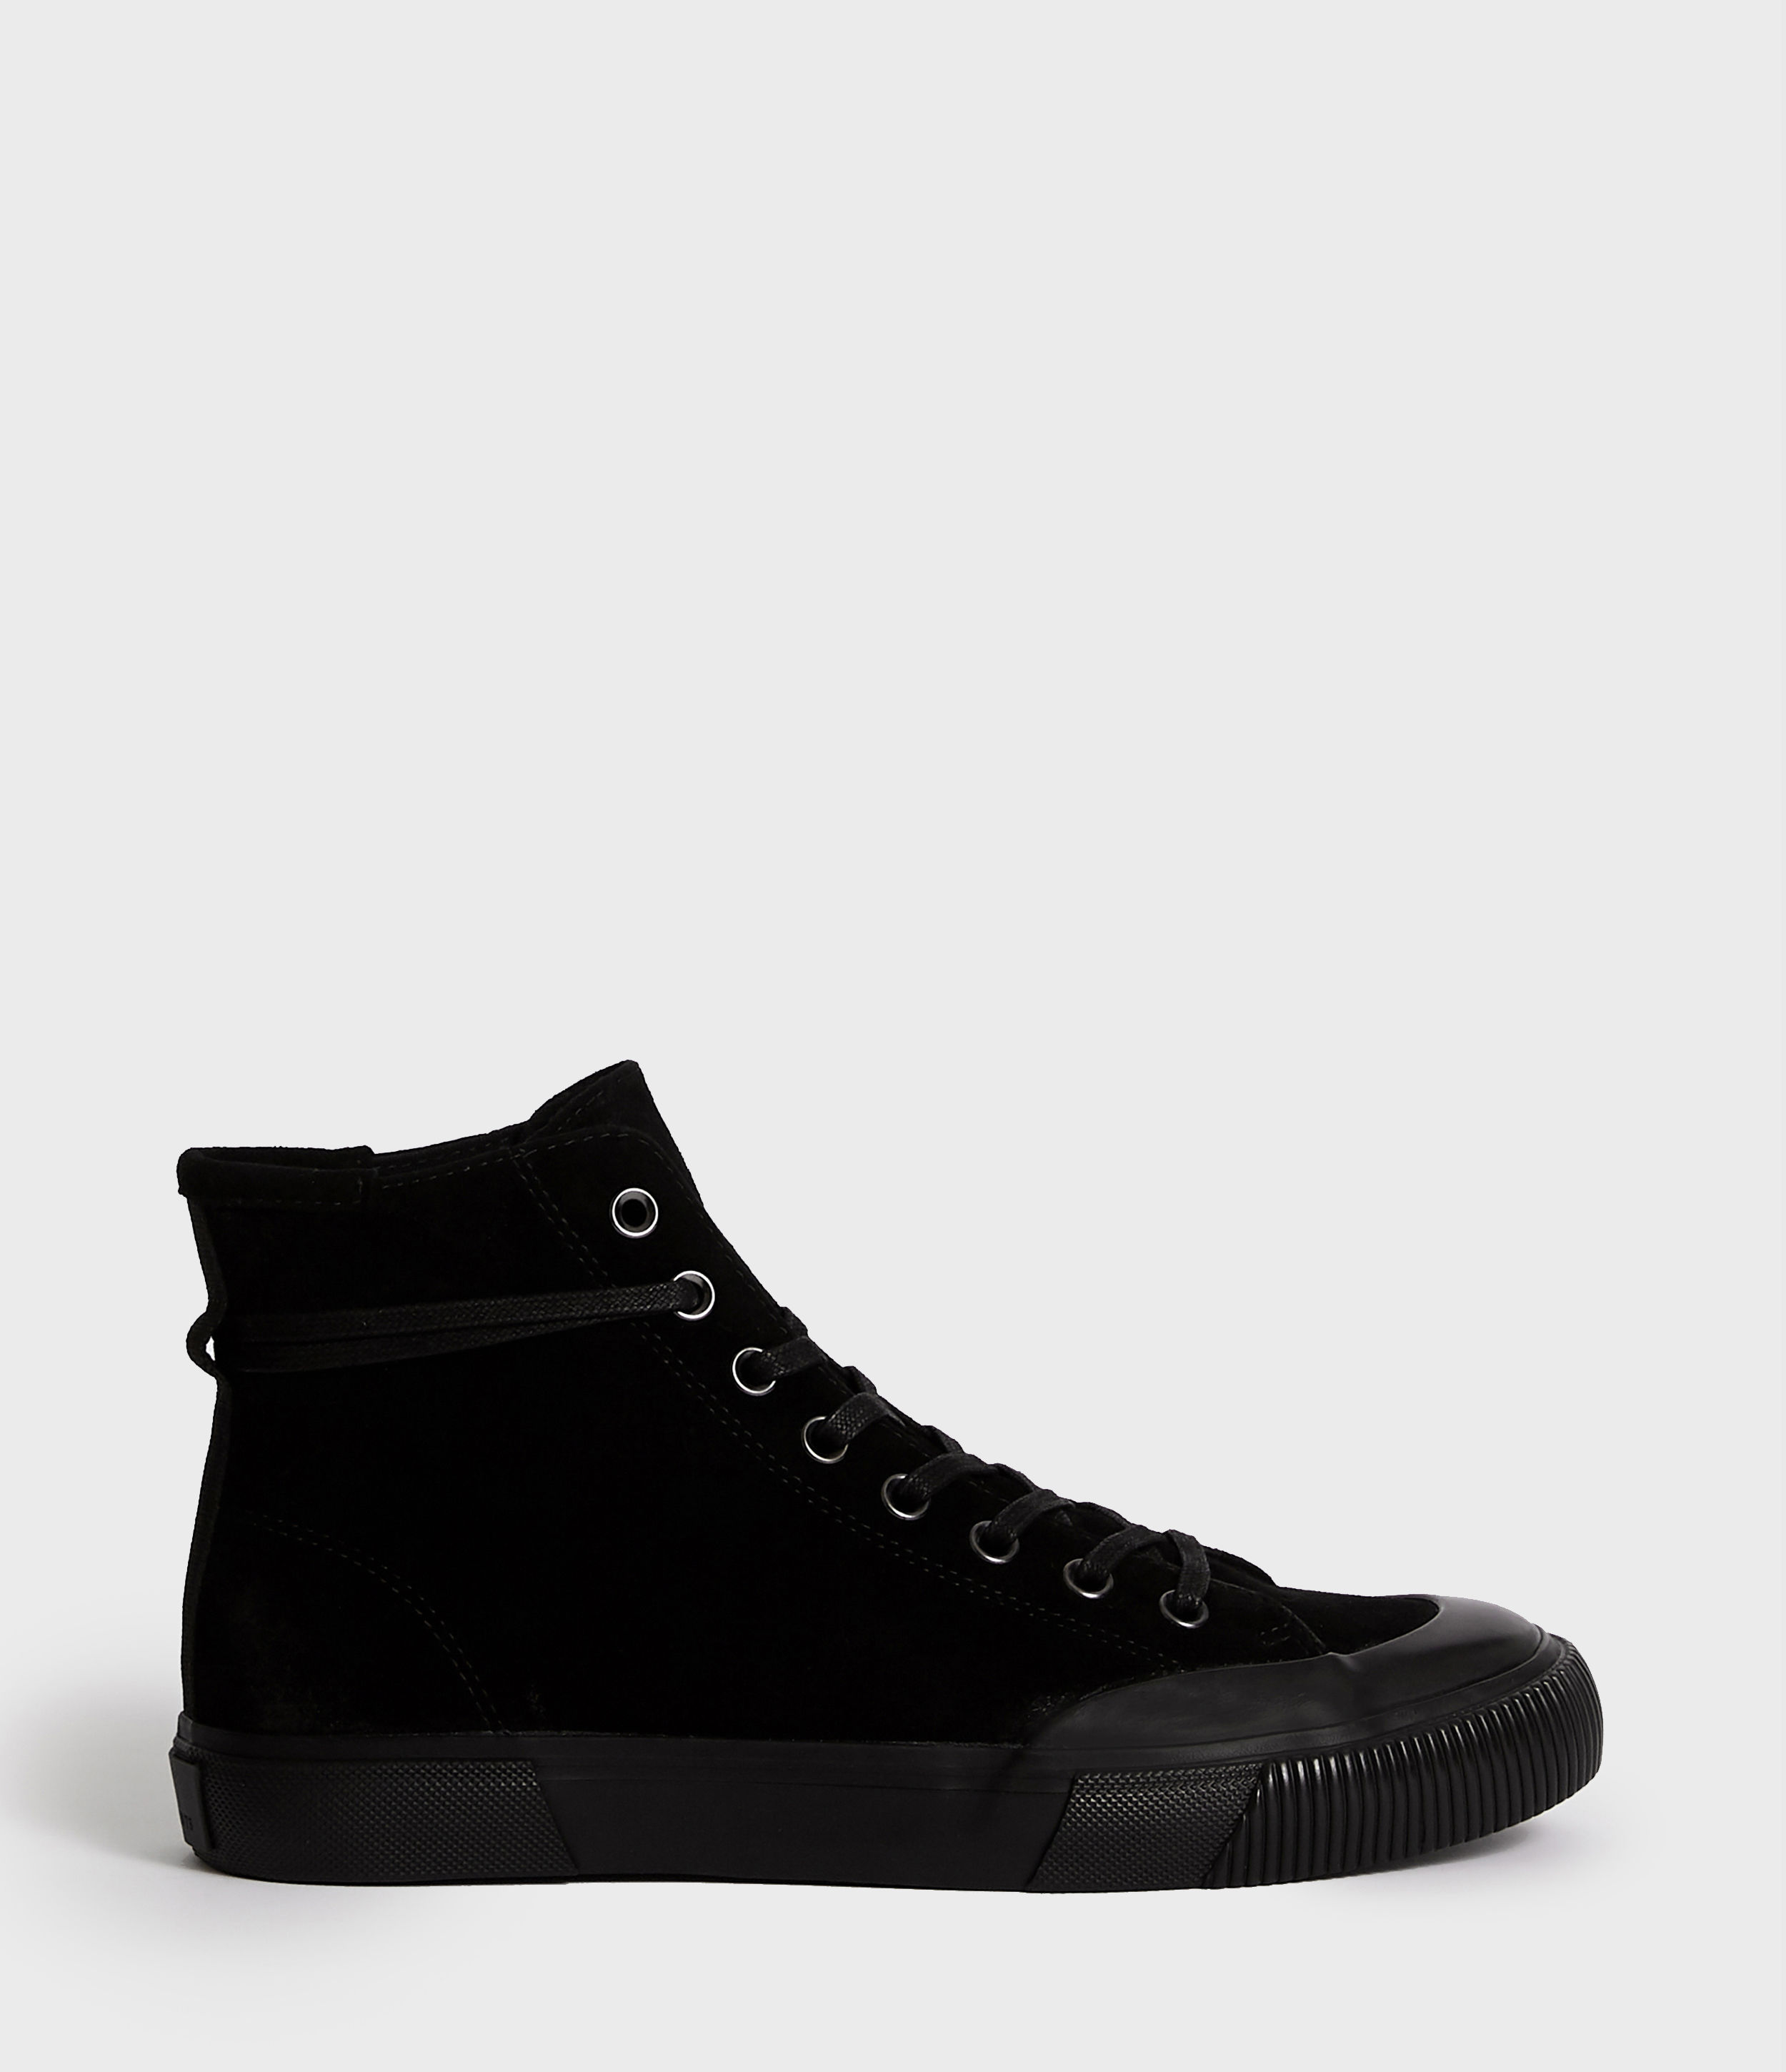 AllSaints Men's Leather Smart Dumont Hightop Trainer, Black, Size: UK 10/US 11/EU 44